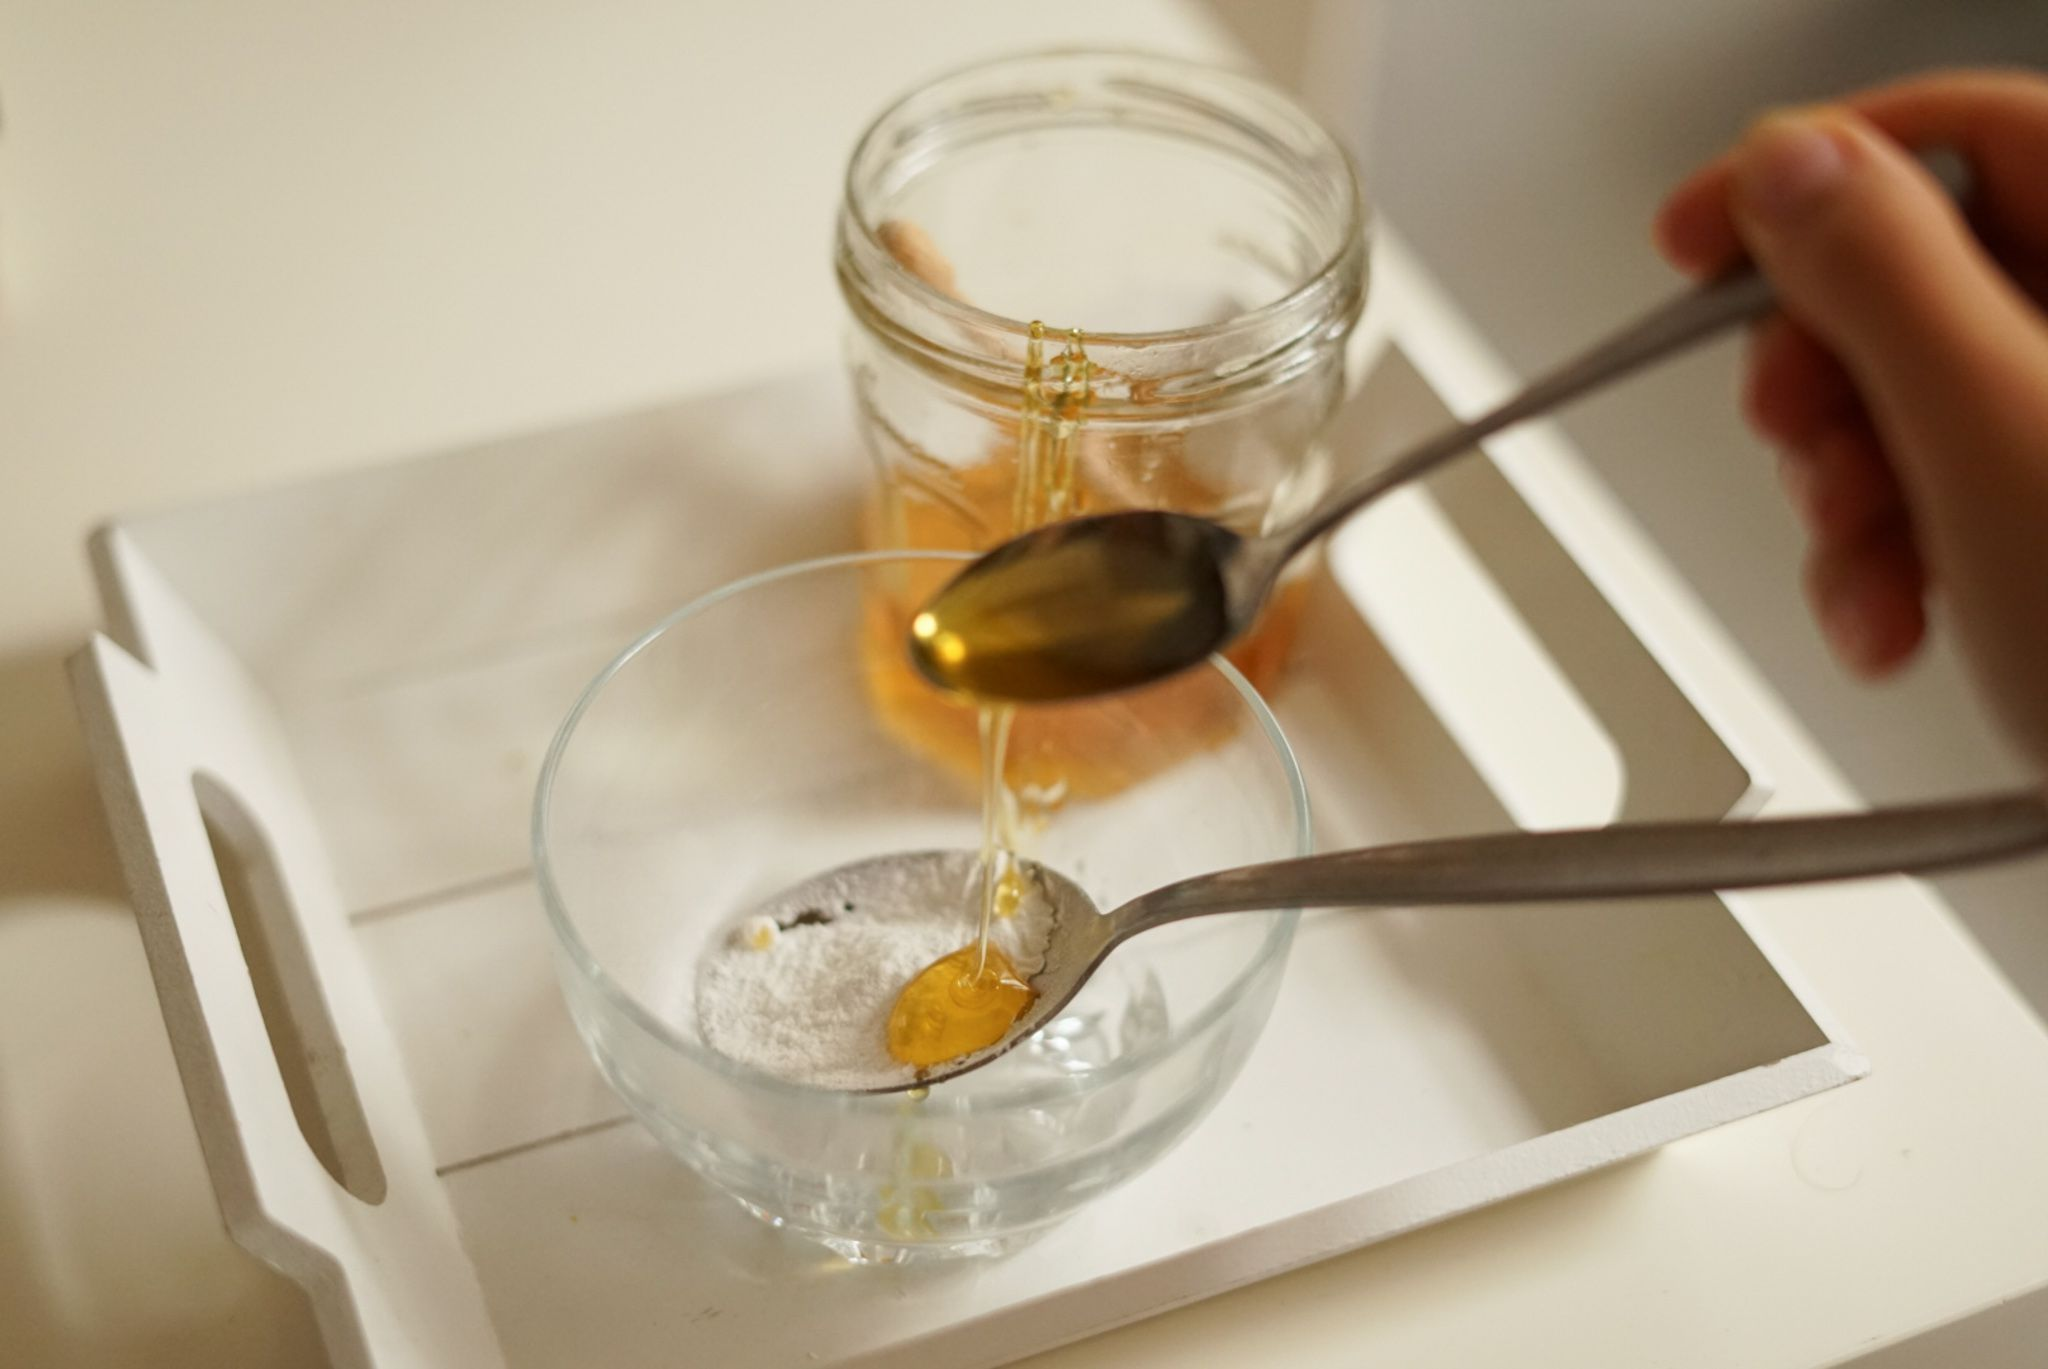 honey is drizzled from a spoon into glass jar of baking soda for natural exfoliant